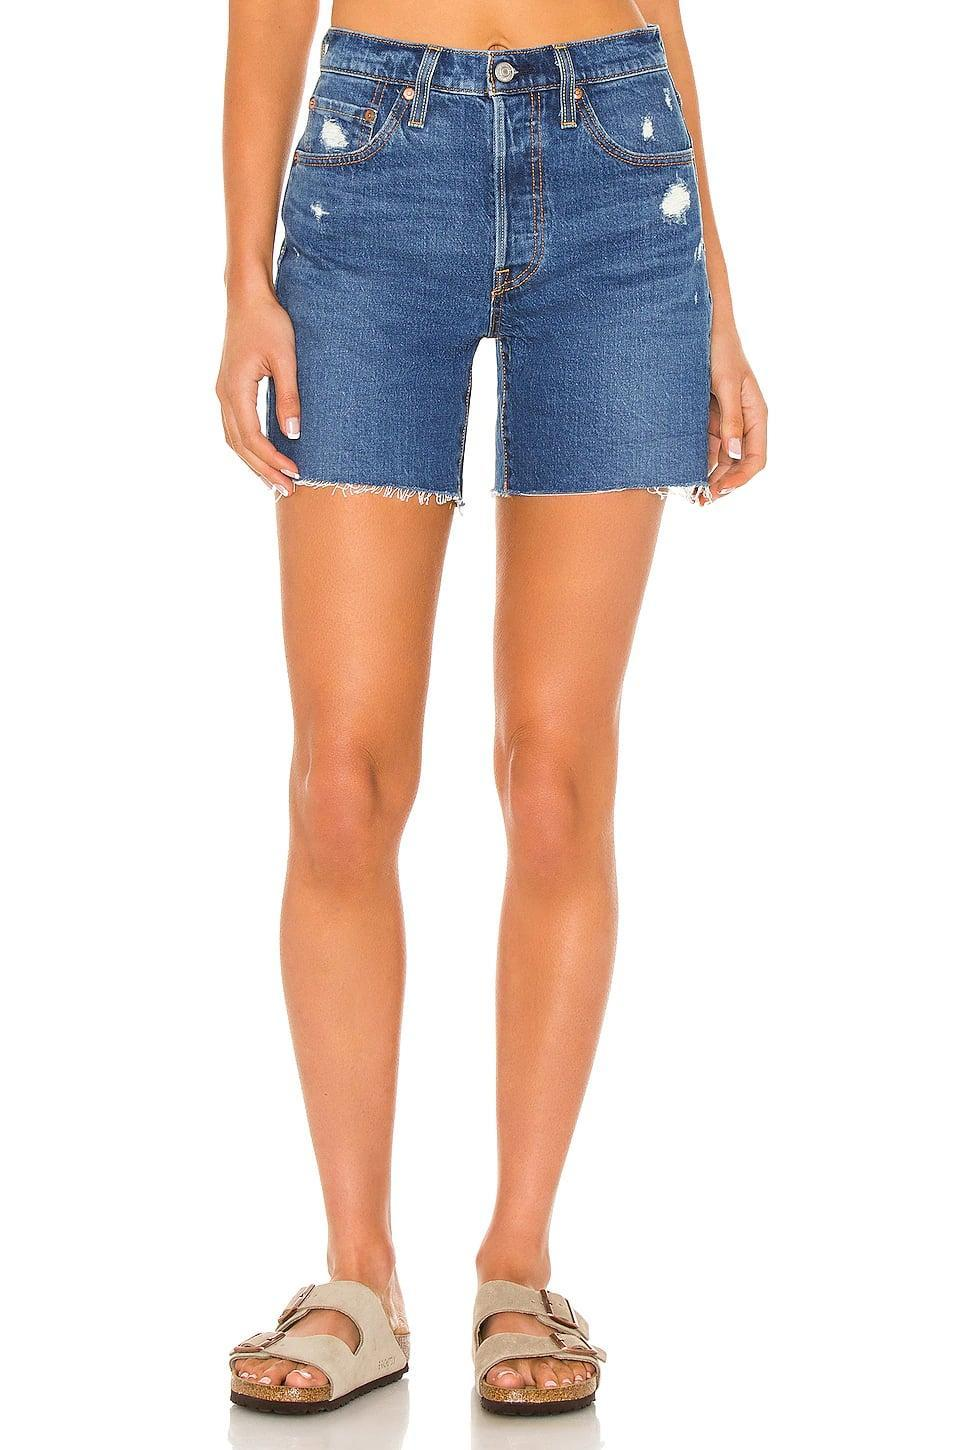 <p>If you're looking for a cool, longer denim short, these <span>Levi's 501 Mid Thigh Shorts</span> ($70) are the way to go.</p>